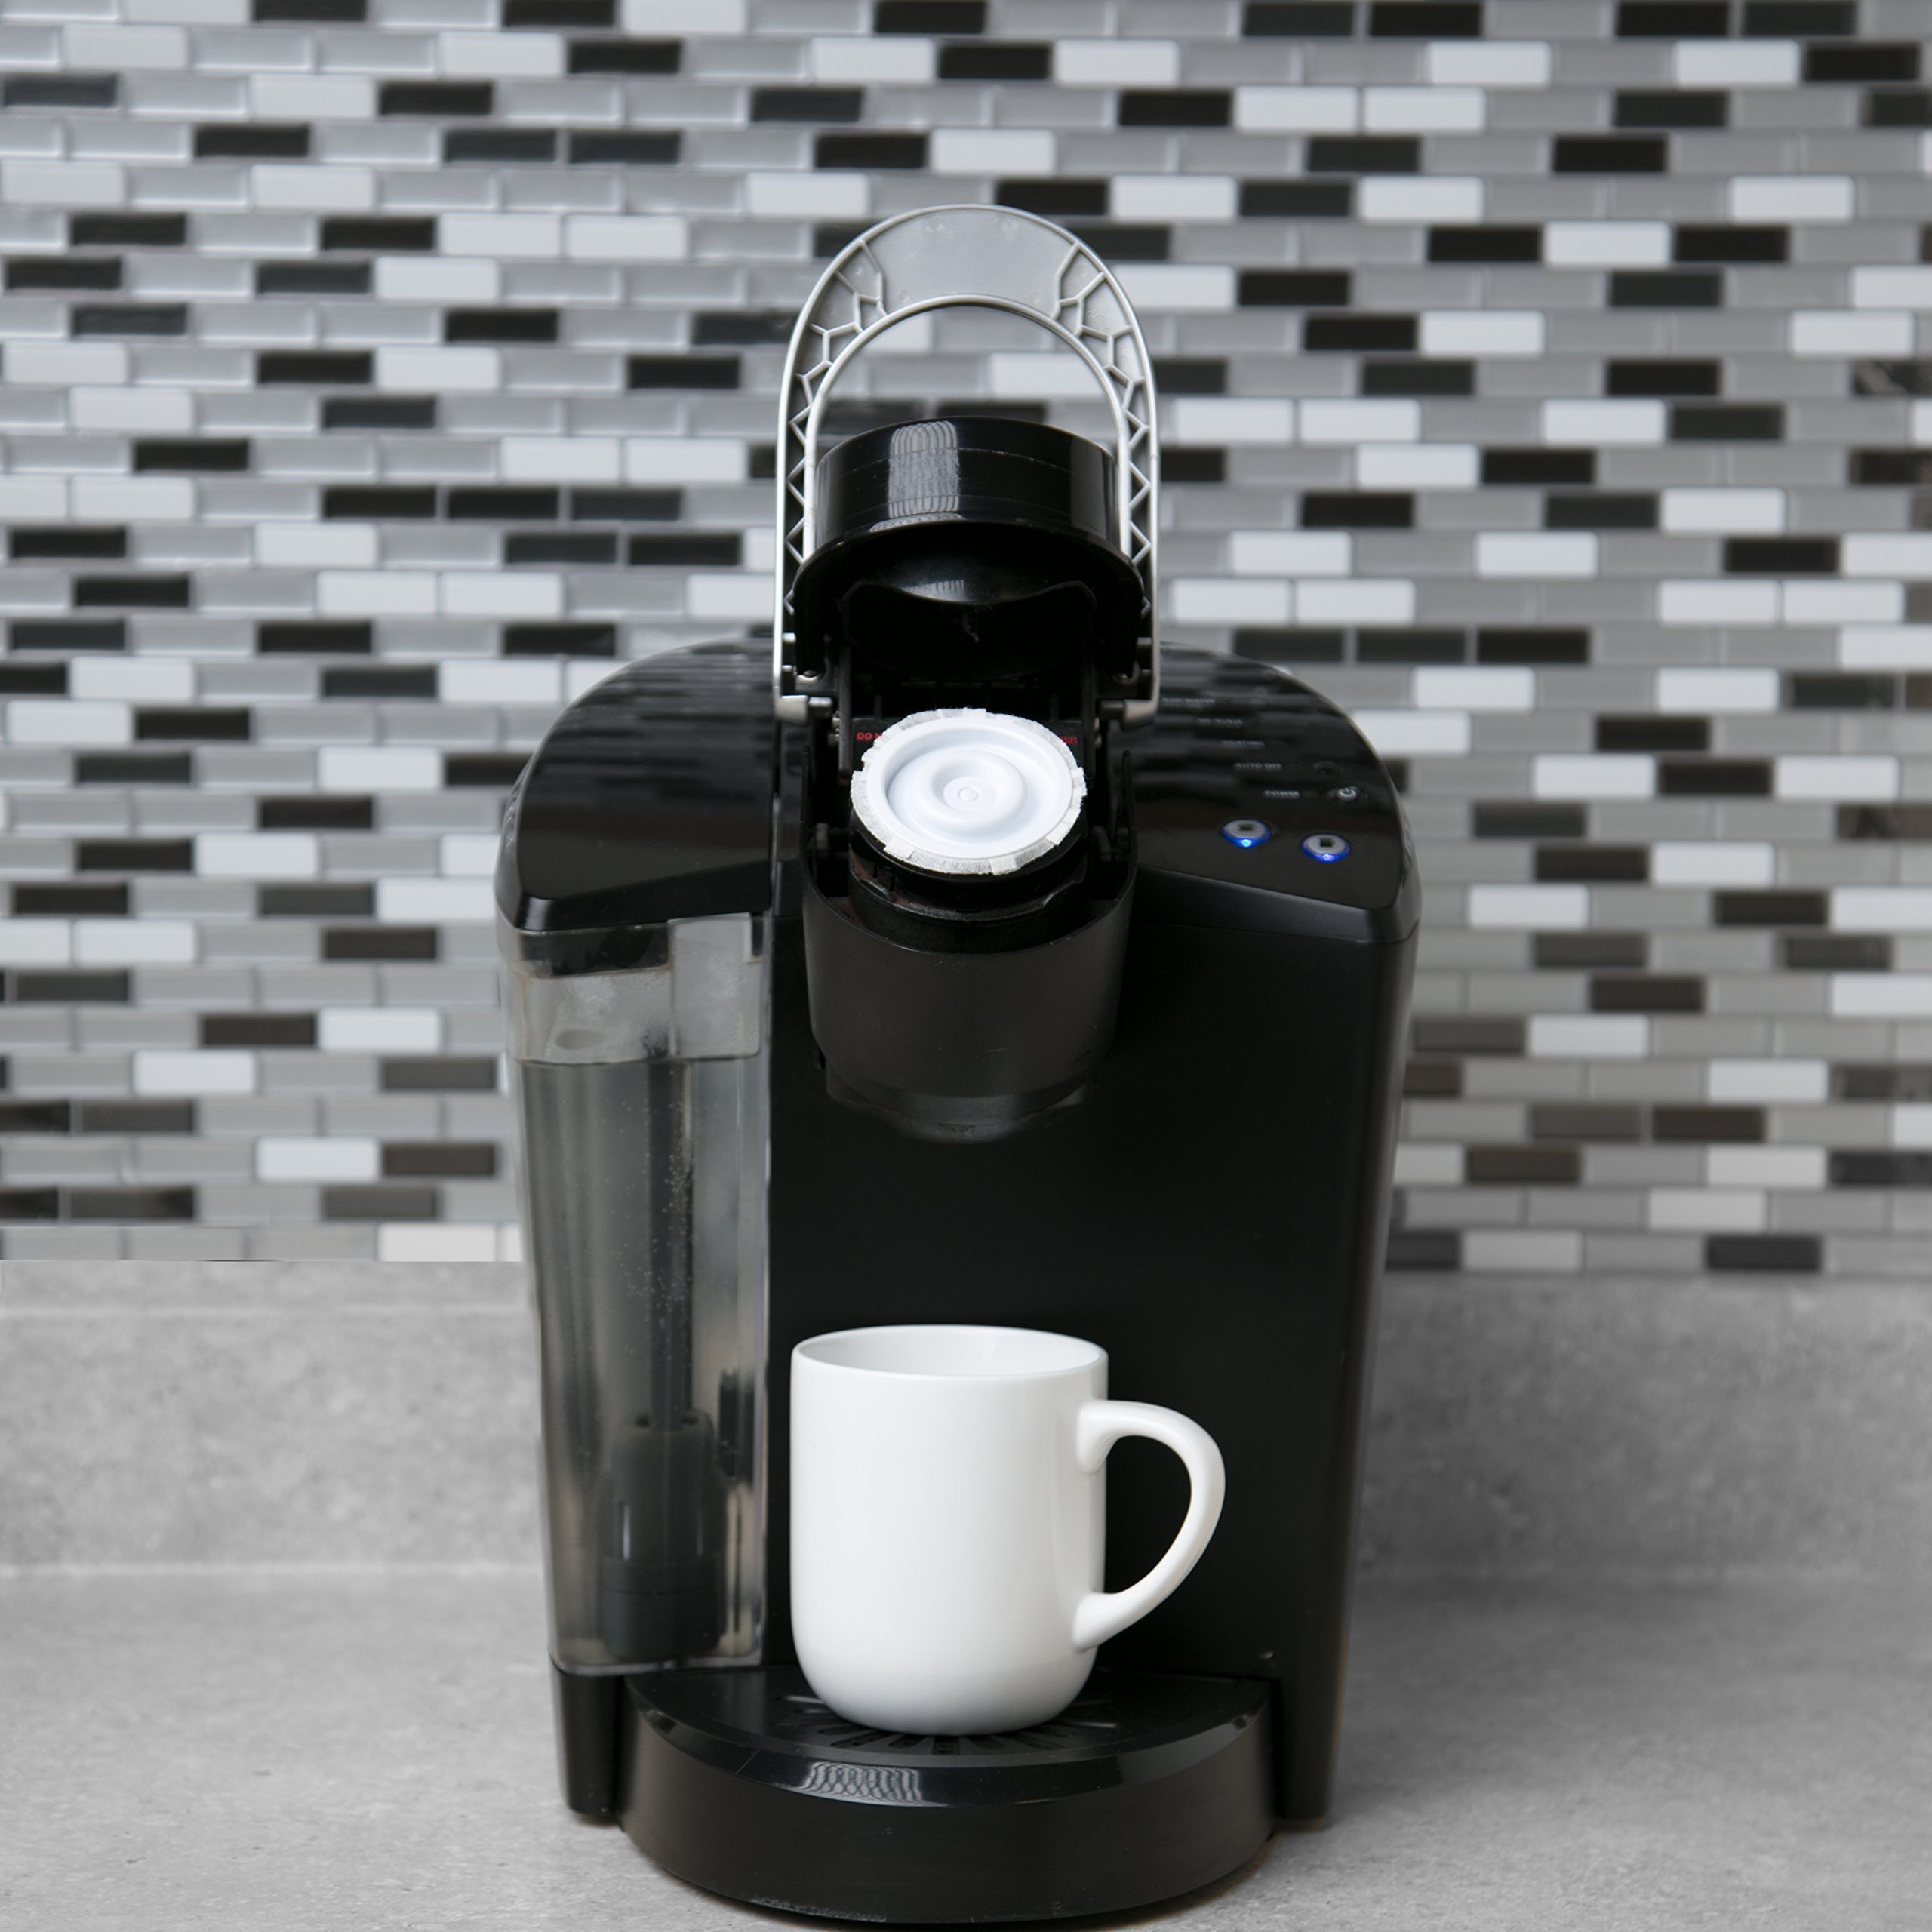 Disposable Cups for Use in Keurig Brewers - Simple Cups - 50 Cups, Lids, and Filters - Use Your Own Coffee in K-cups by Simple Cups (Image #7)